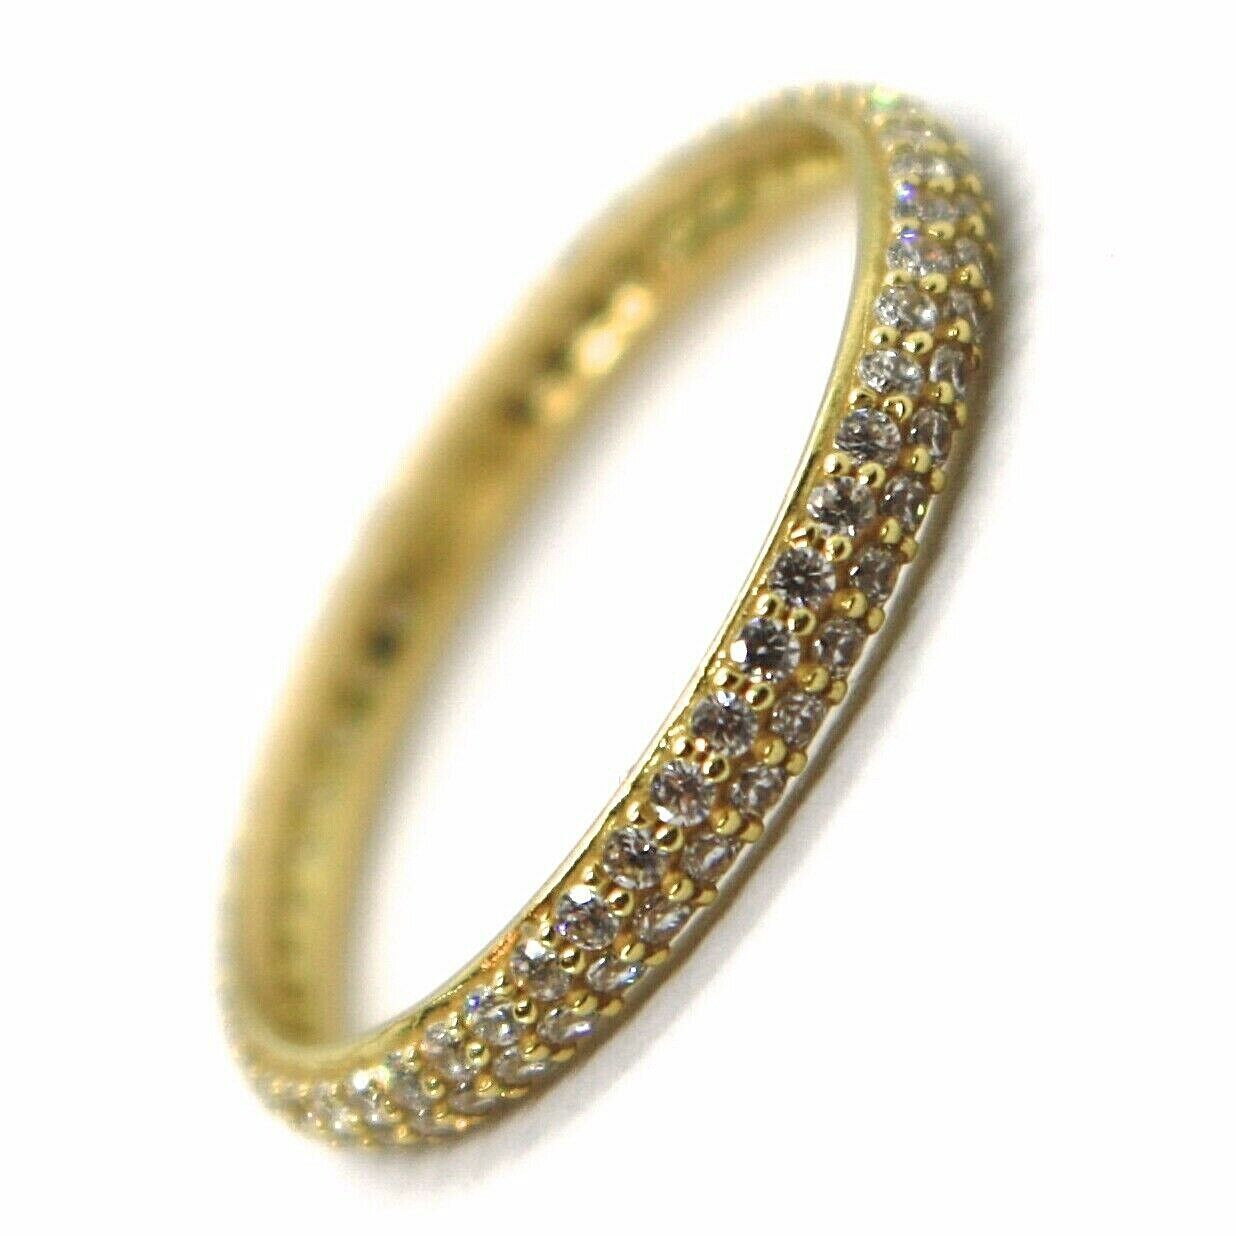 18K YELLOW GOLD ETERNITY BAND RING, DOUBLE CUBIC ZIRCONIA ROW, THICKNESS 2.5 MM